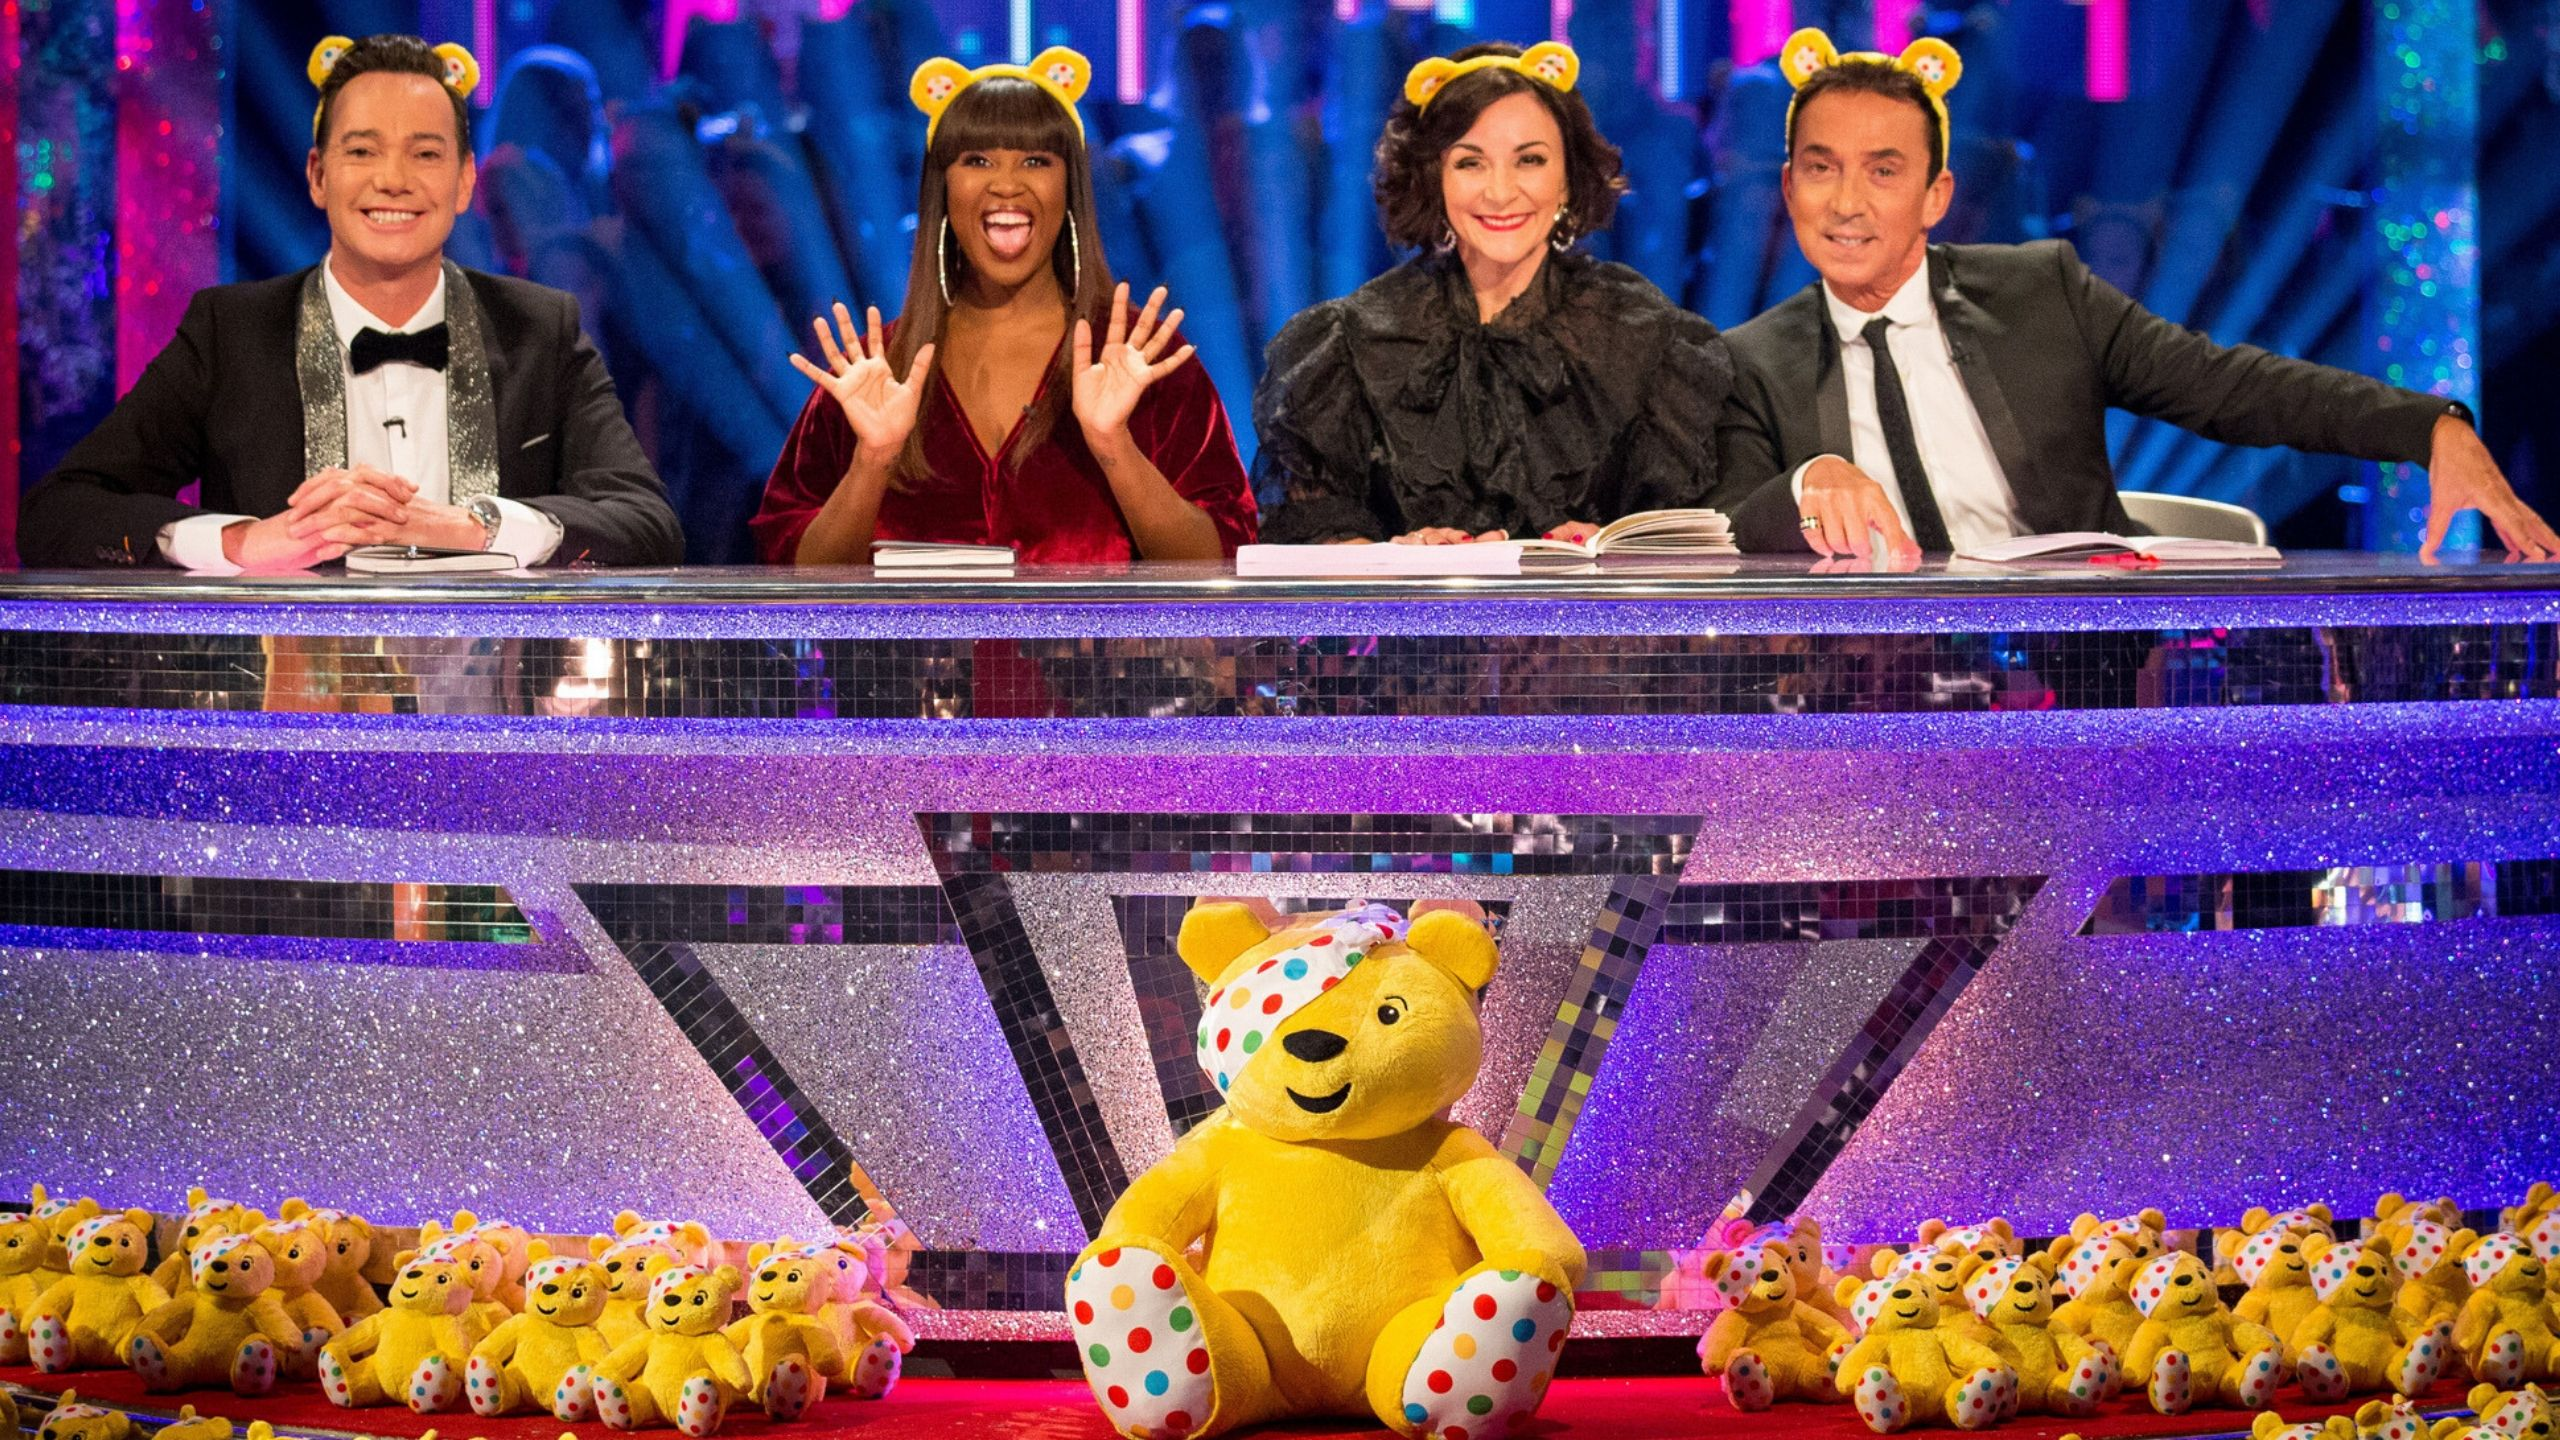 Strictly judges Children in Need